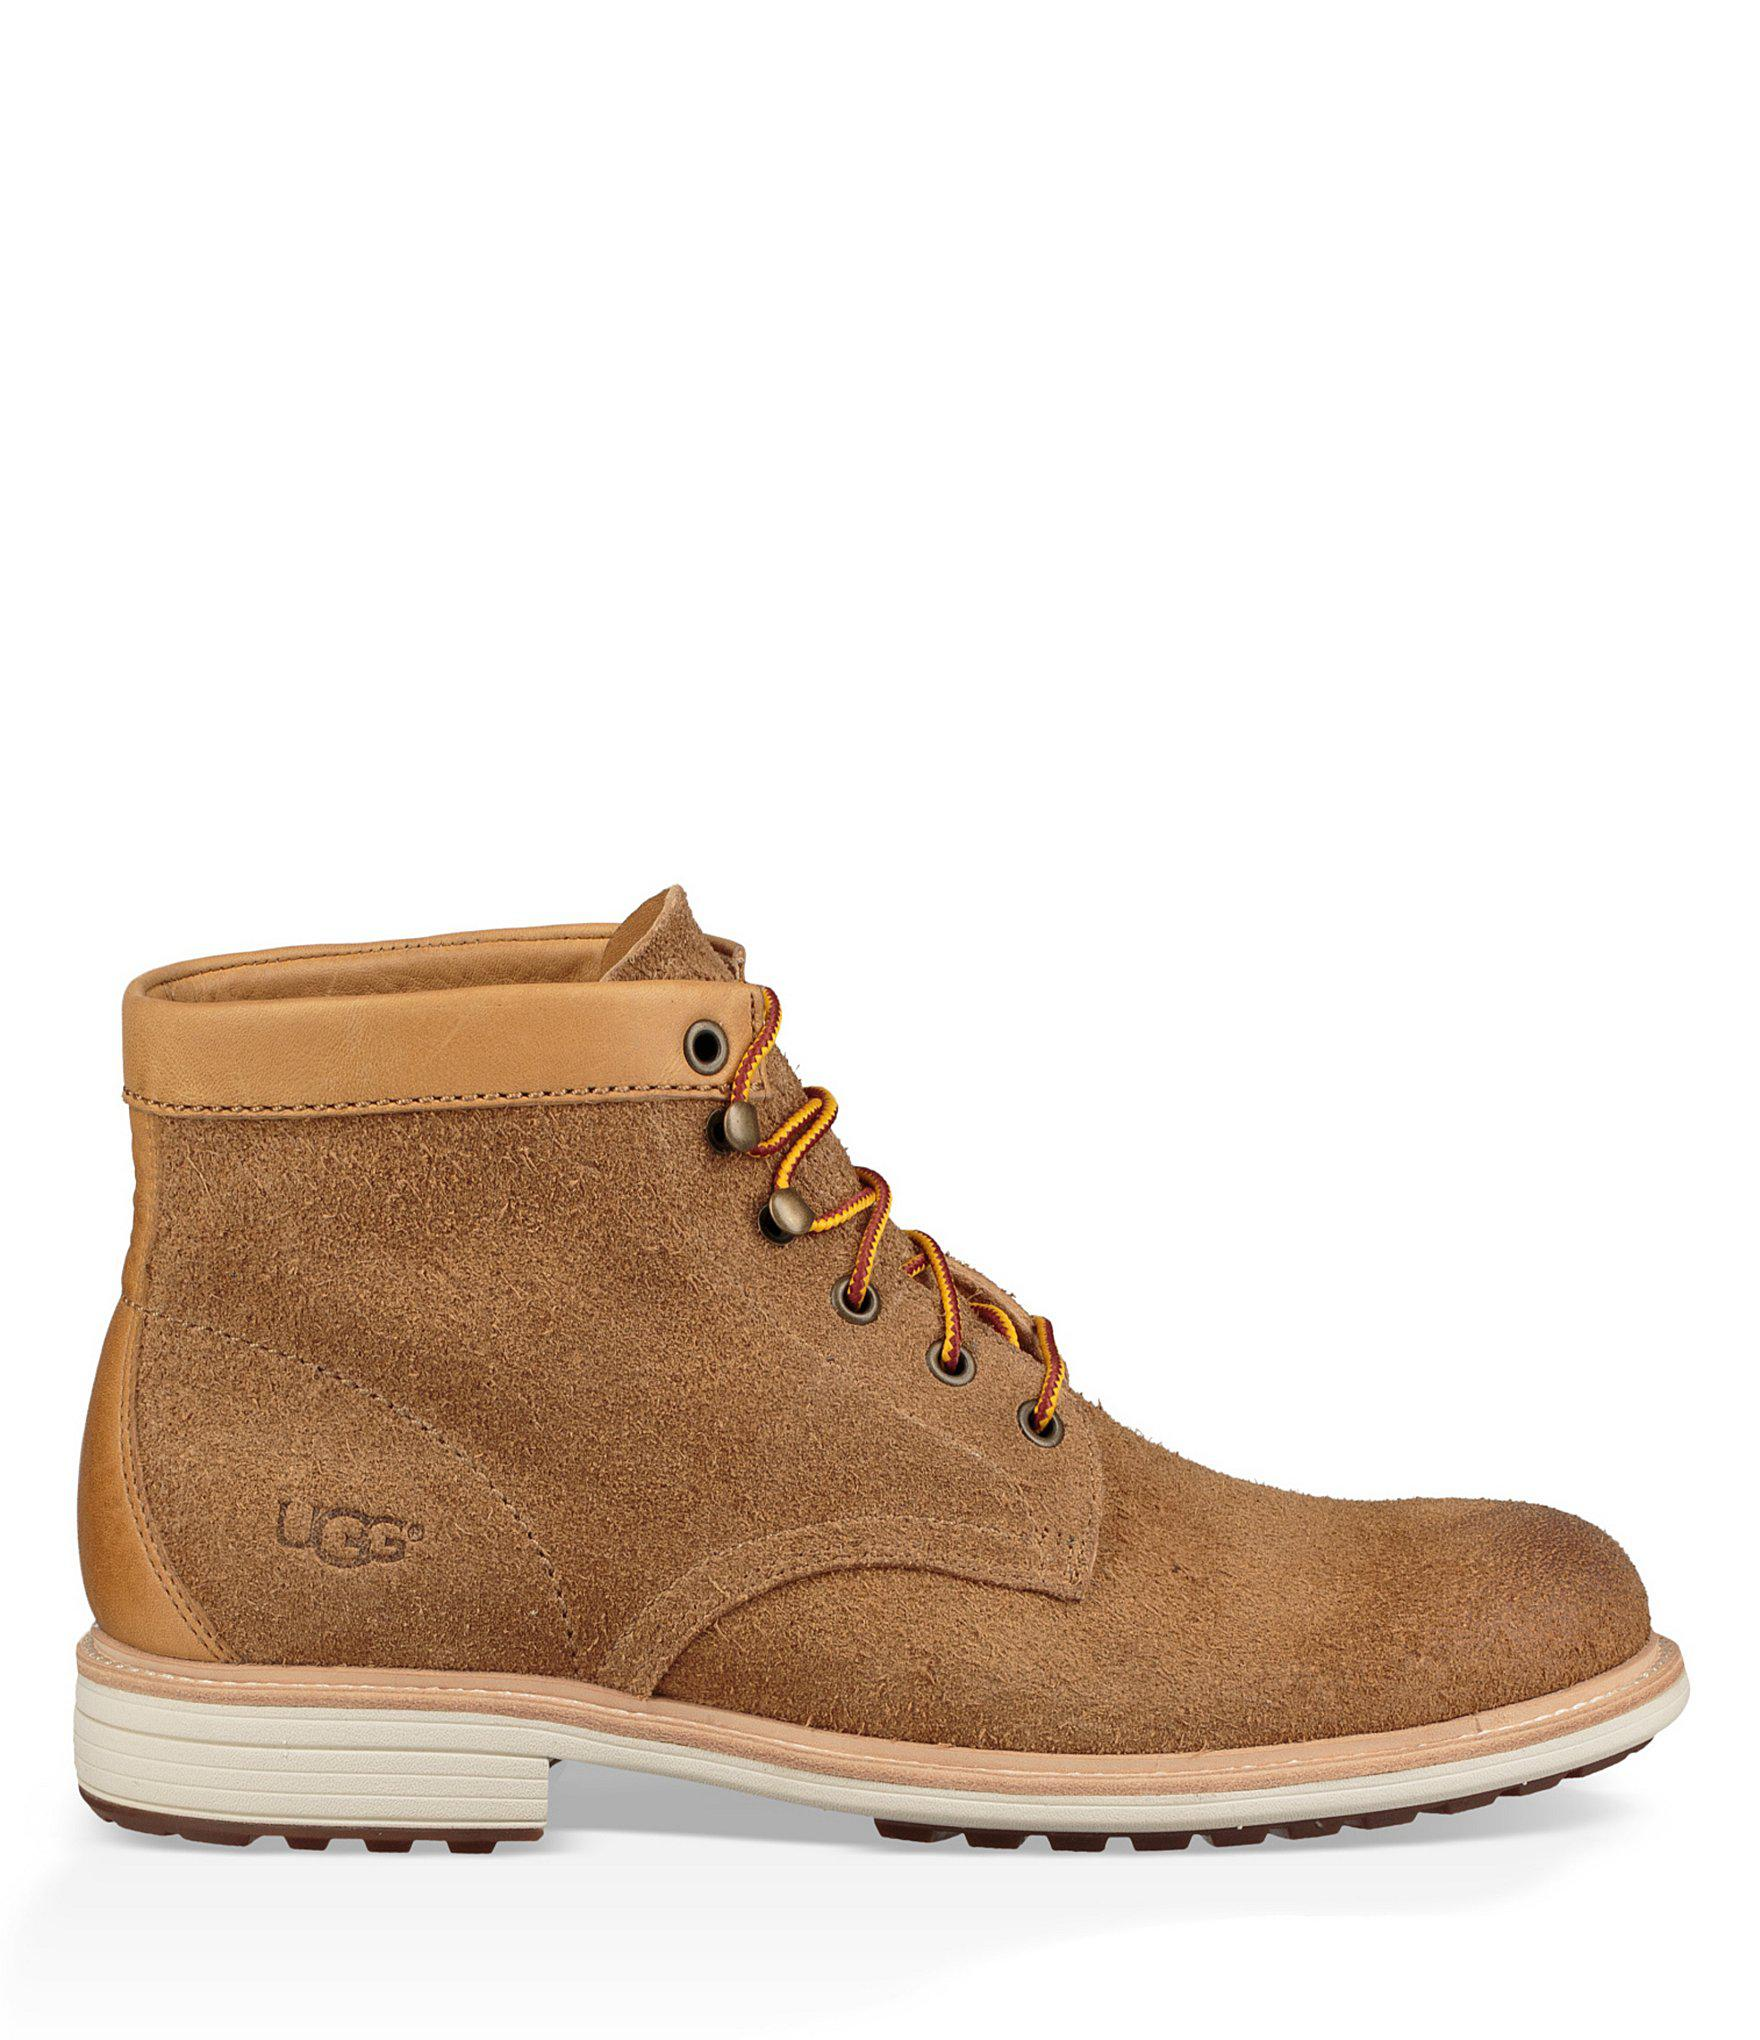 a8f3266f668 Lyst - UGG Men S Vestmar Boots in Brown for Men